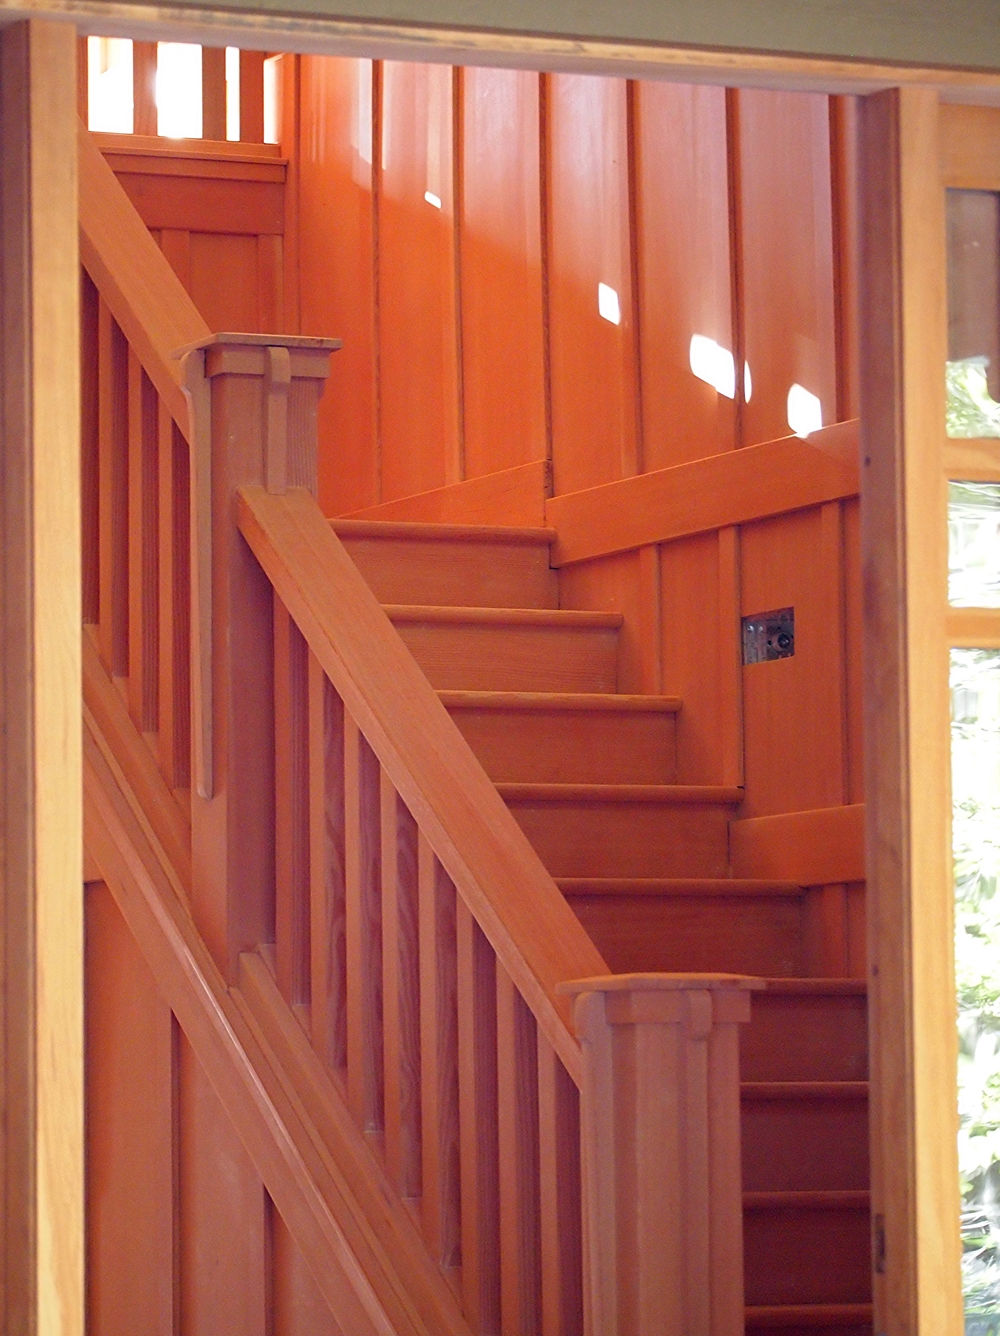 Vertical grain fir staircase in Arts & Crafts vineyard home